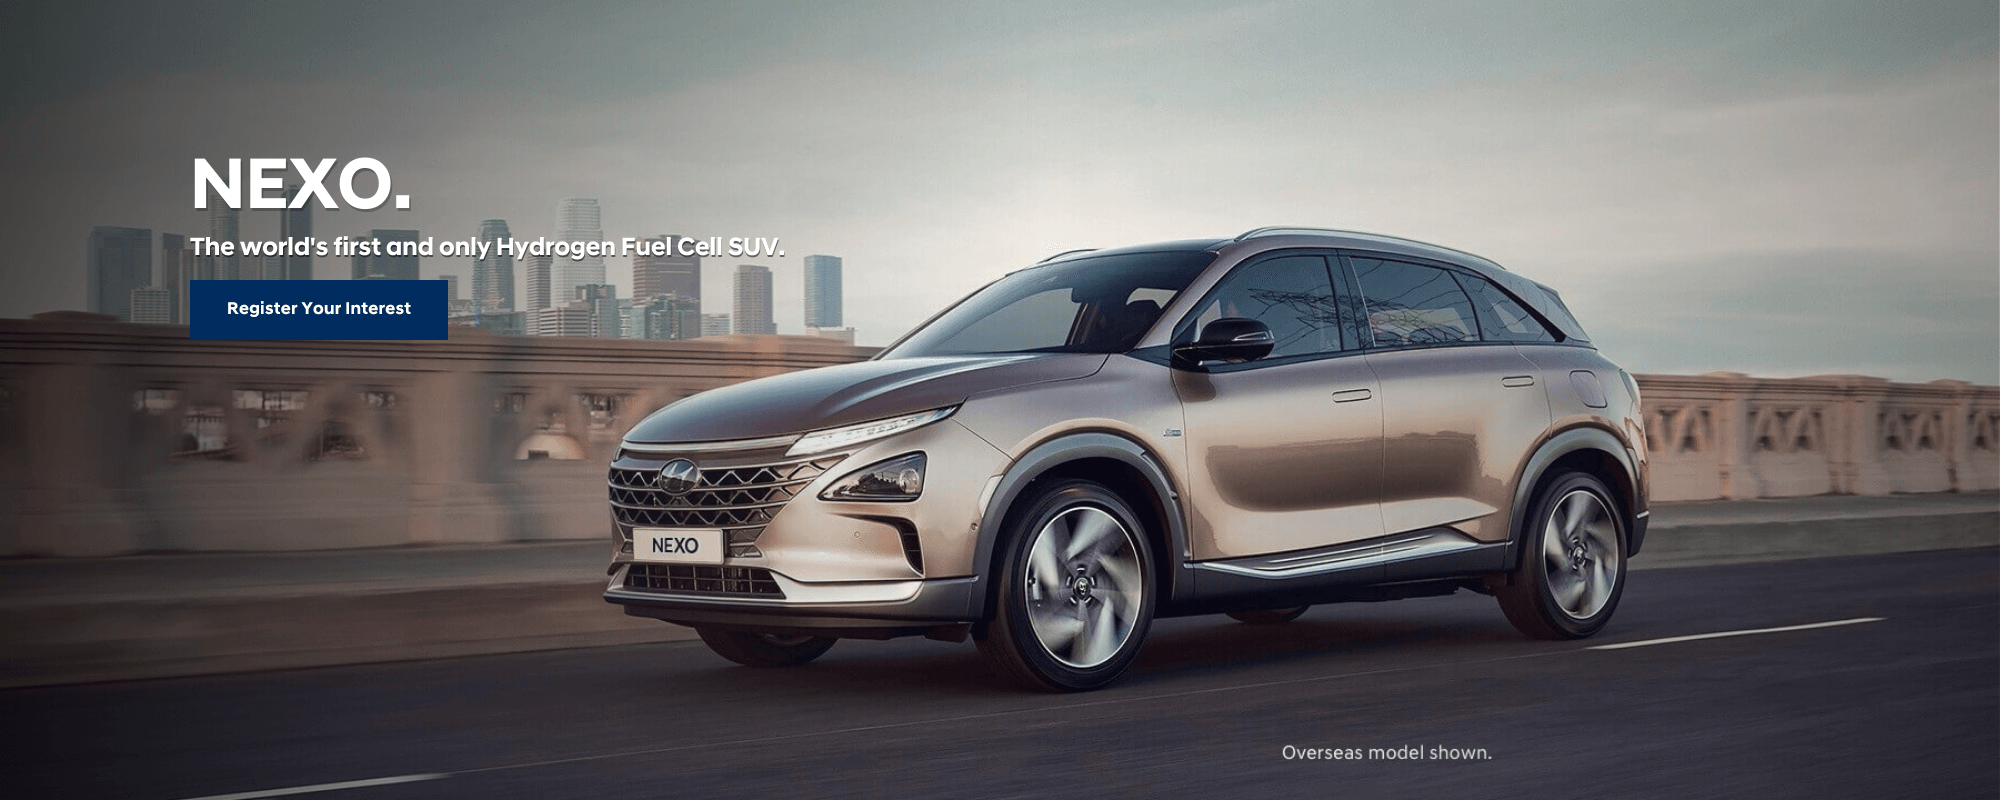 Coming Soon: Hyundai NEXO. The world's first and only Hydrogen Fuel Cell SUV.